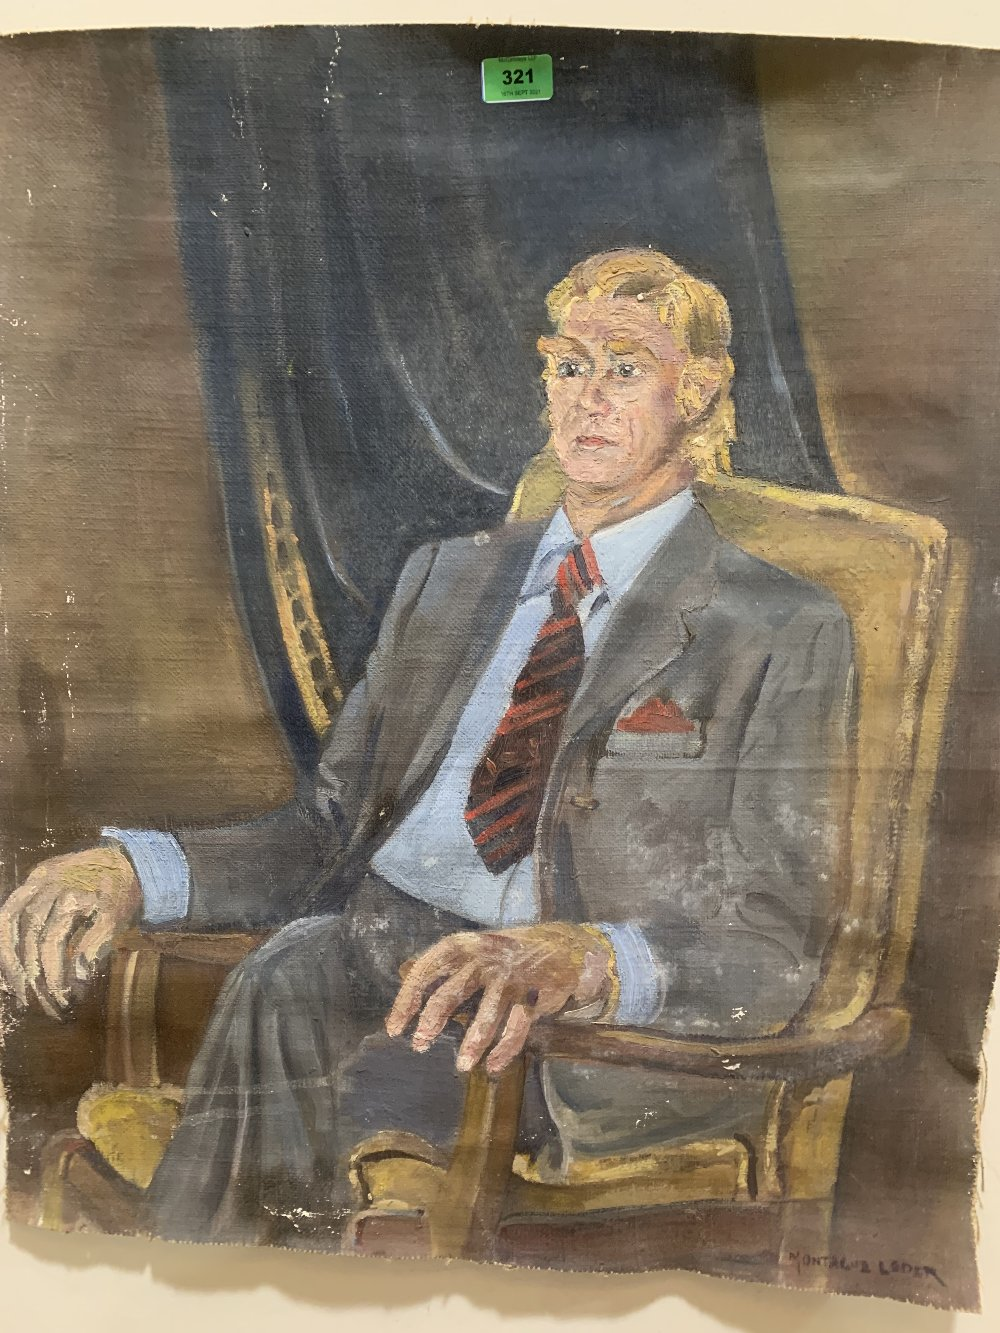 MONTAGUE LEDER. BRITISH 1897-1976 A portrait of a seated gentleman. Signed. Oil on unstretched